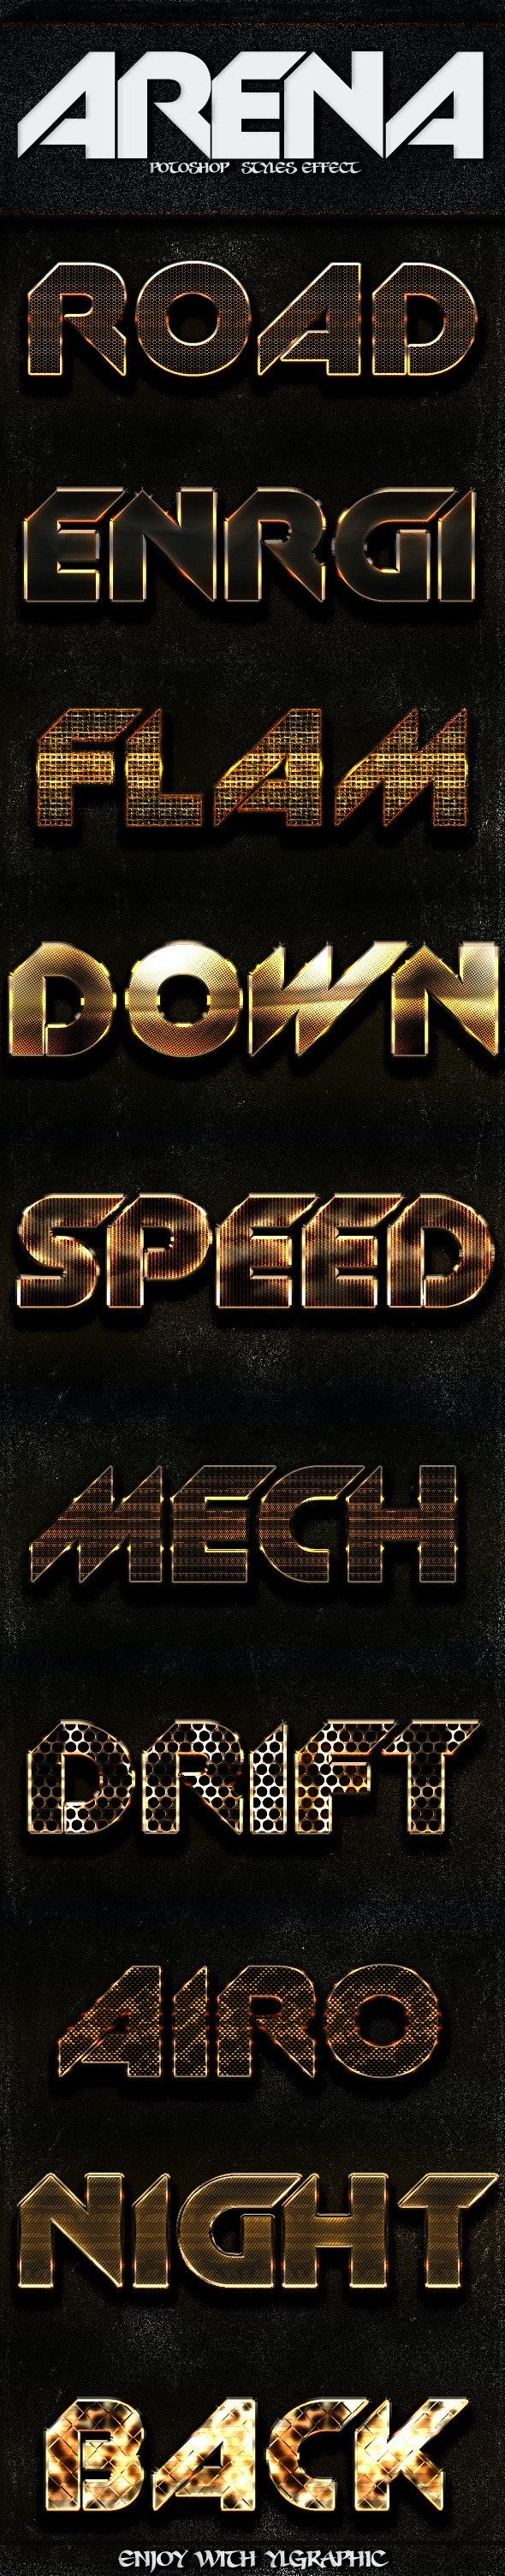 Arena Photoshop FX - Text Effects Styles